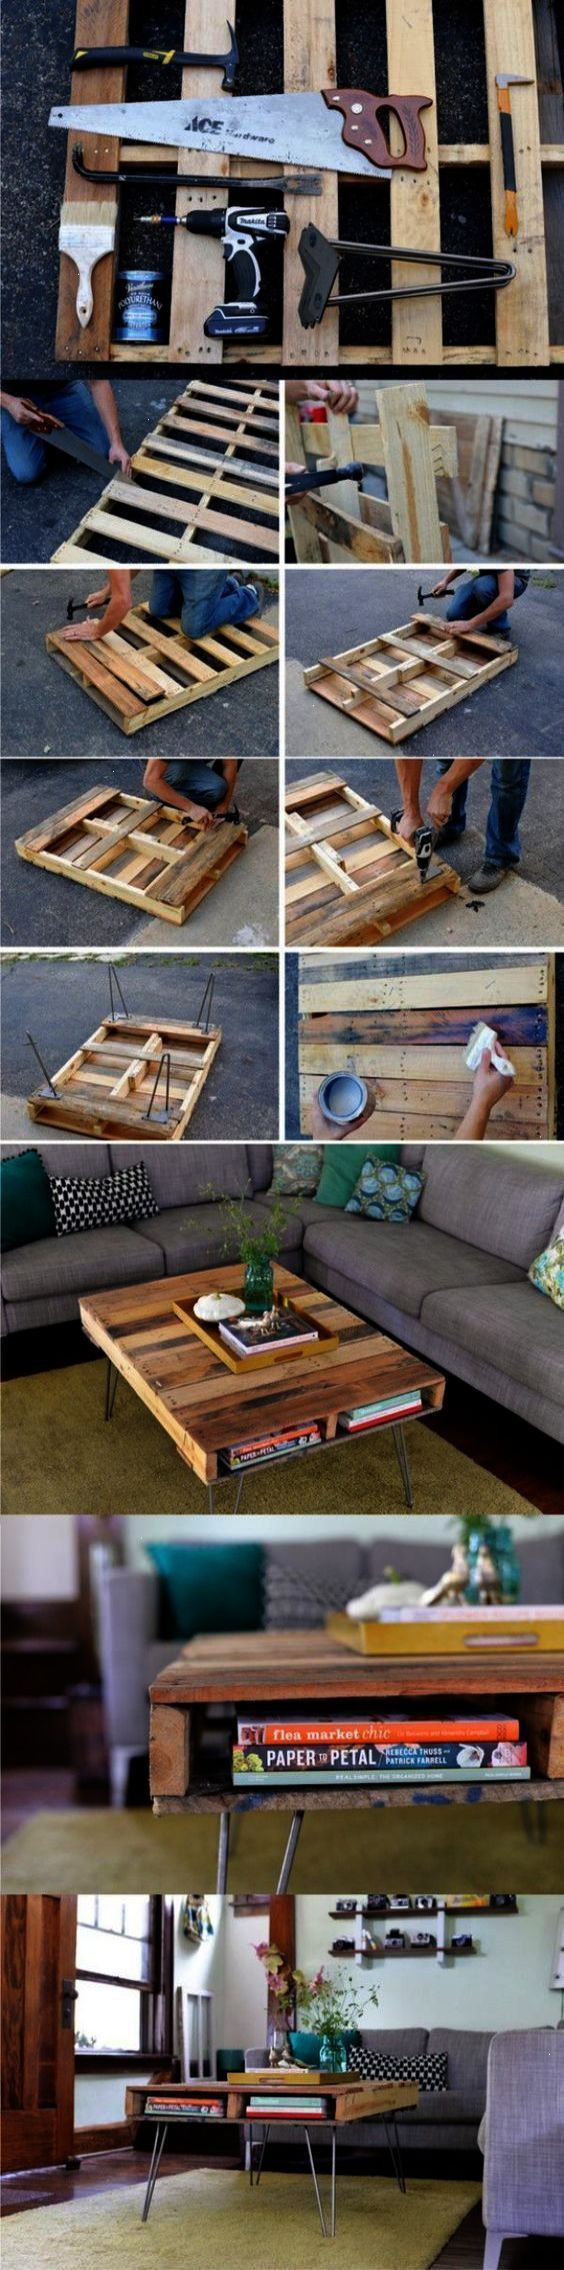 best Celebrate Me Home images on Pinterest Home ideas Good